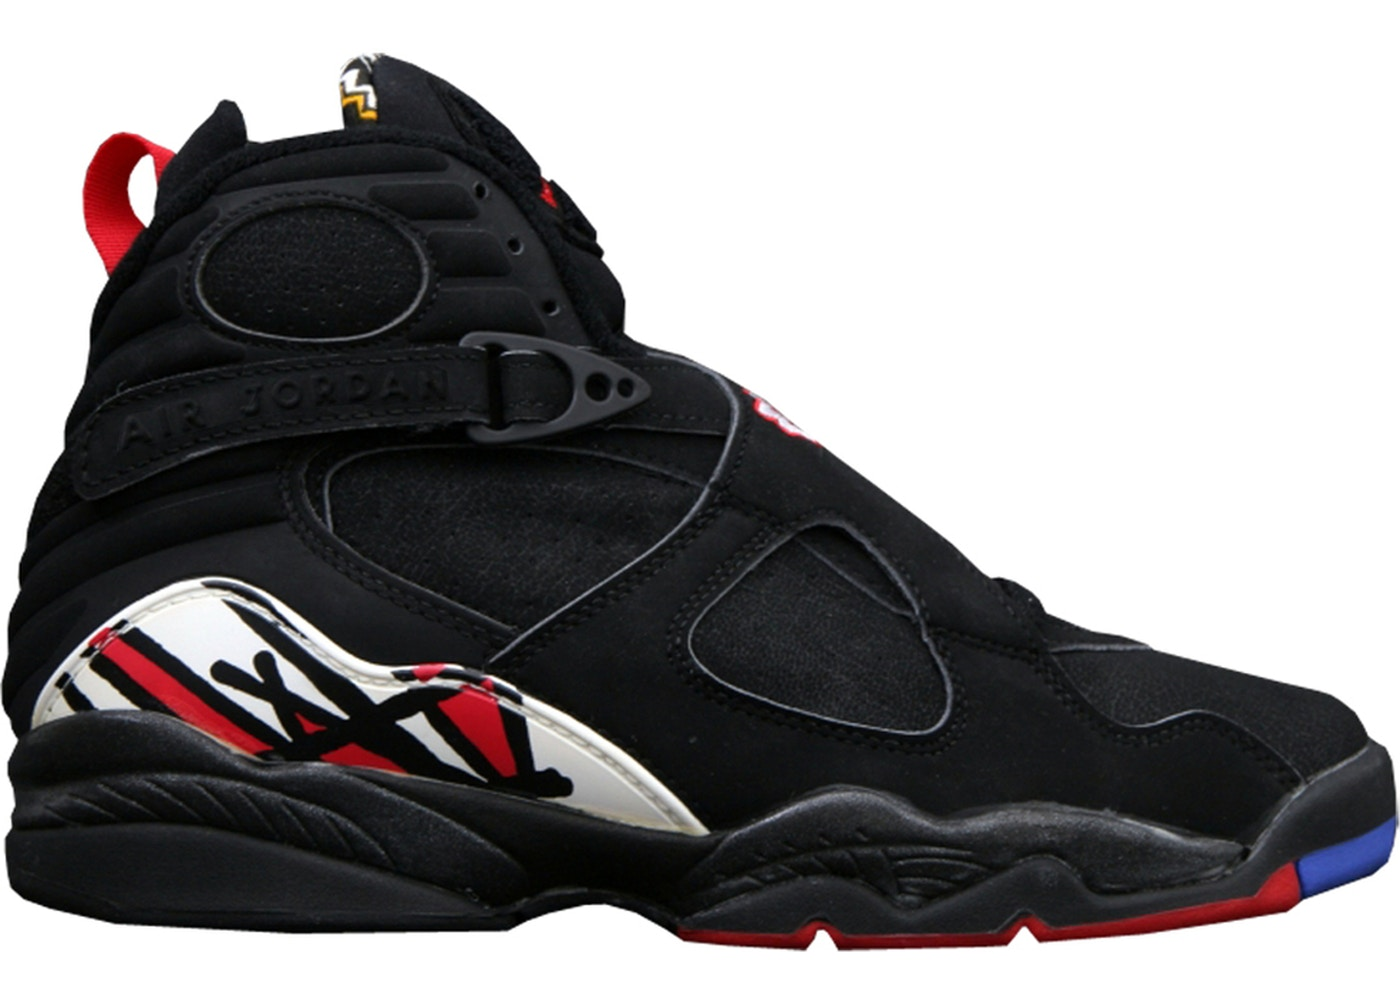 Jordan 8 OG Playoffs (1993) - 130169-060 85a9d420c7